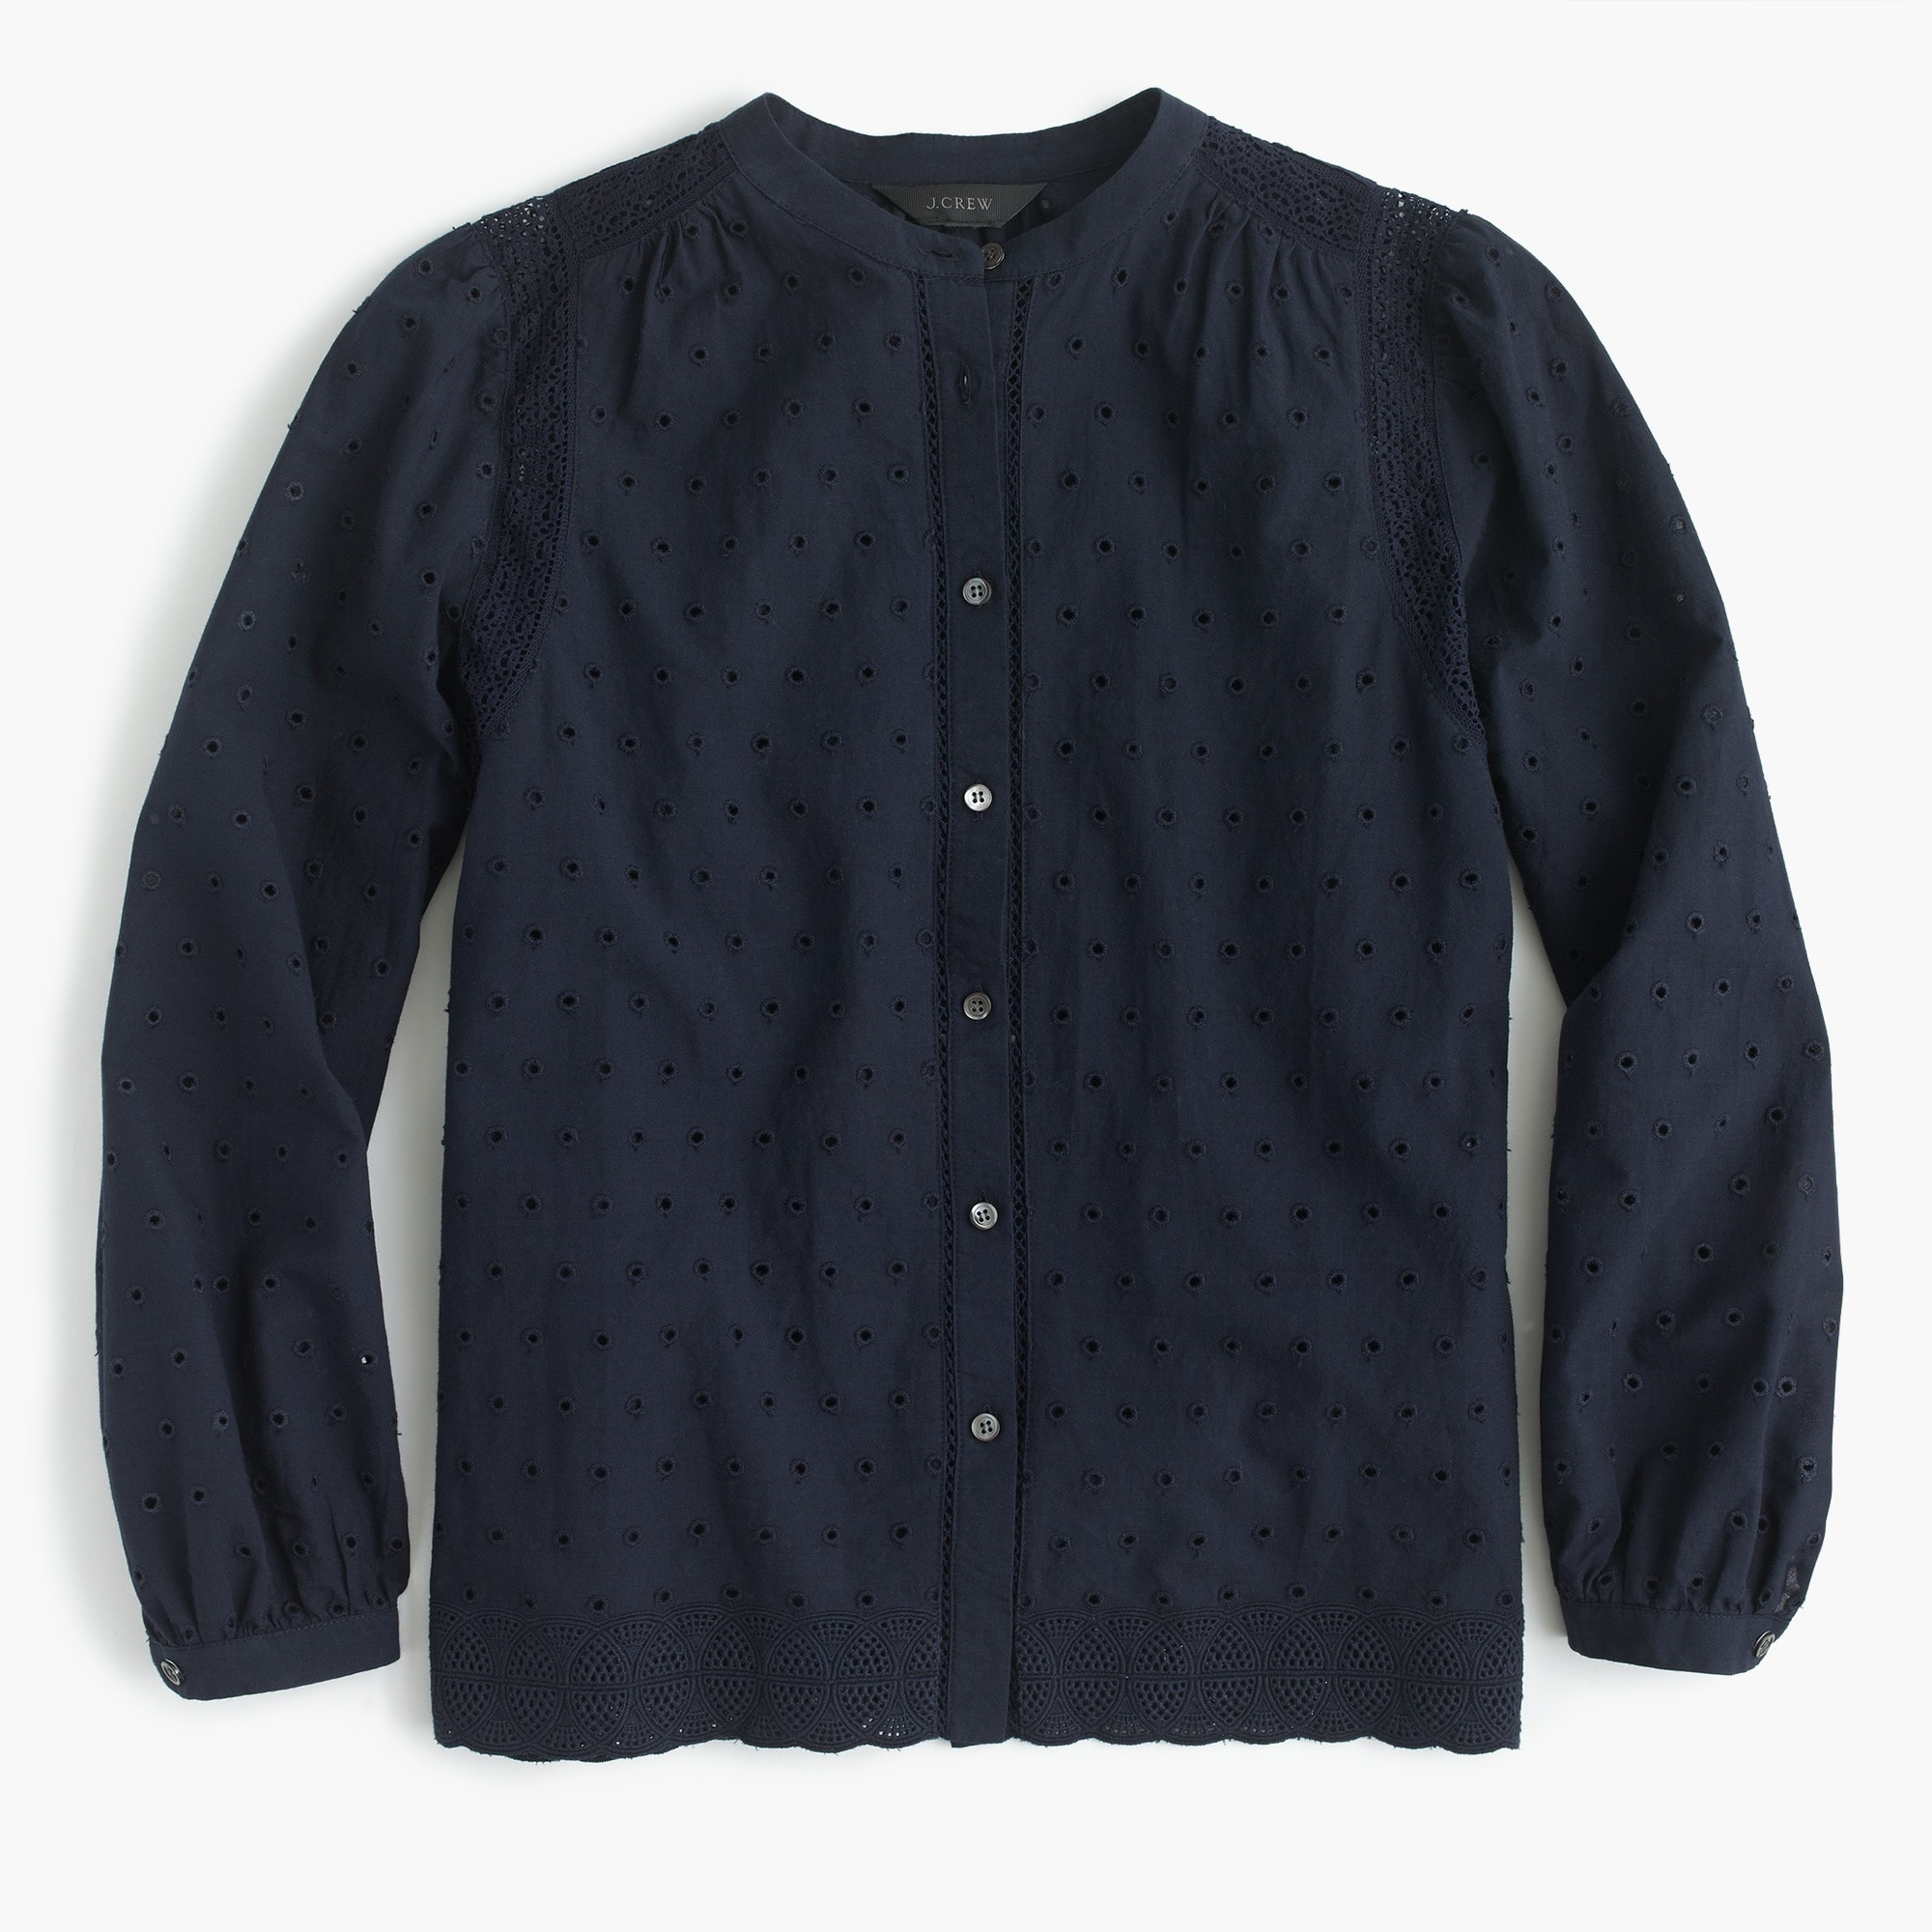 Tall eyelet button-up shirt